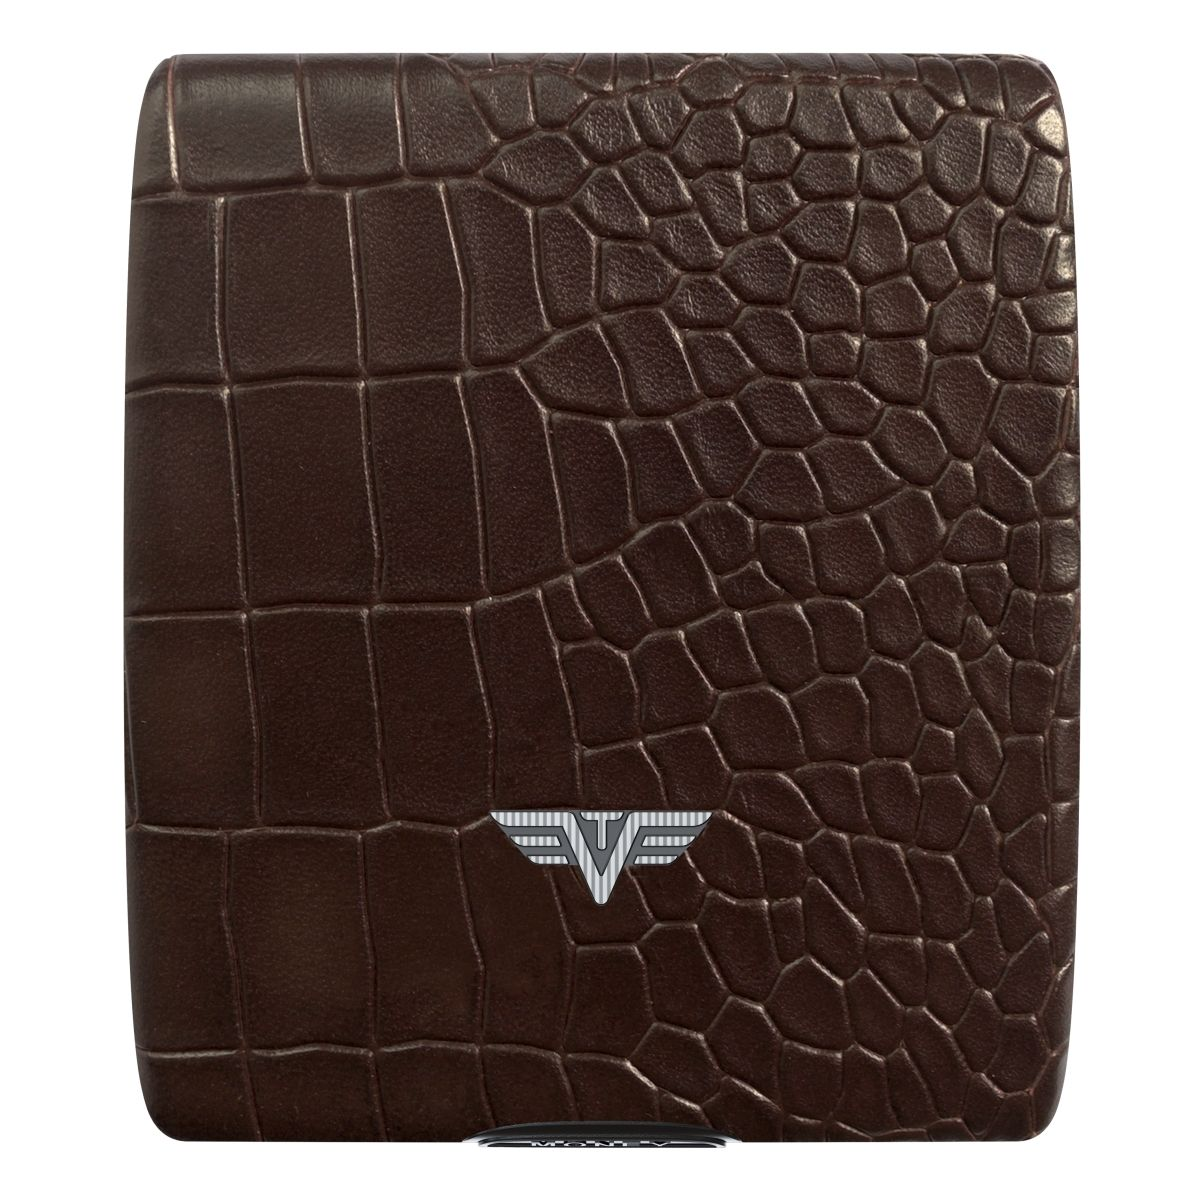 TRU VIRTU Aluminum Wallet Beluga - Money & Cards - Leather Line - Corco Brown